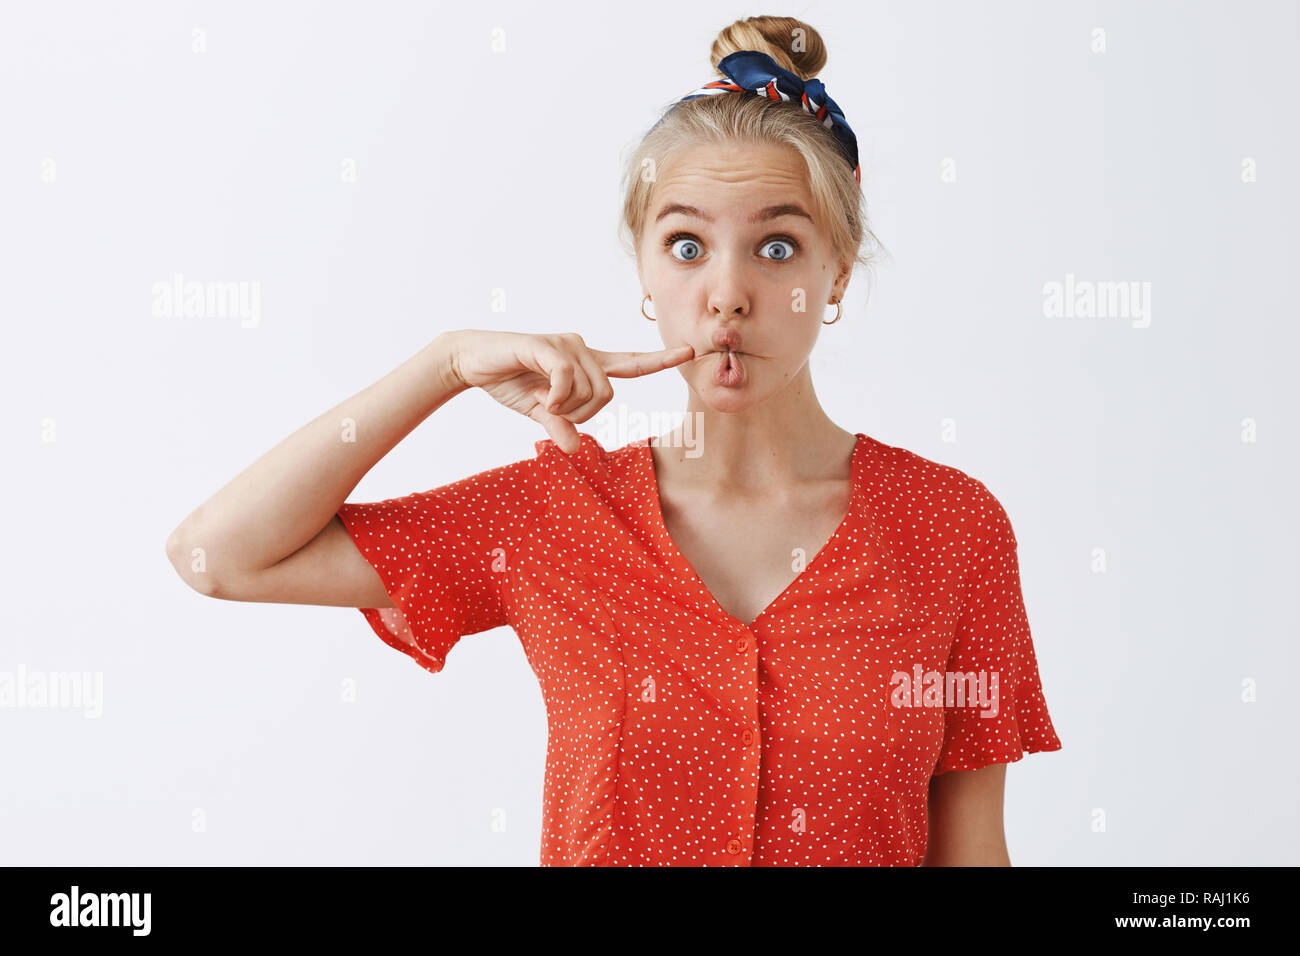 Funny expressive attractive blonde female student in vintage red polka-dot blouse and headband folding mouth in fish lips and poking cheek standing with childish expresion over grey wall - Stock Image